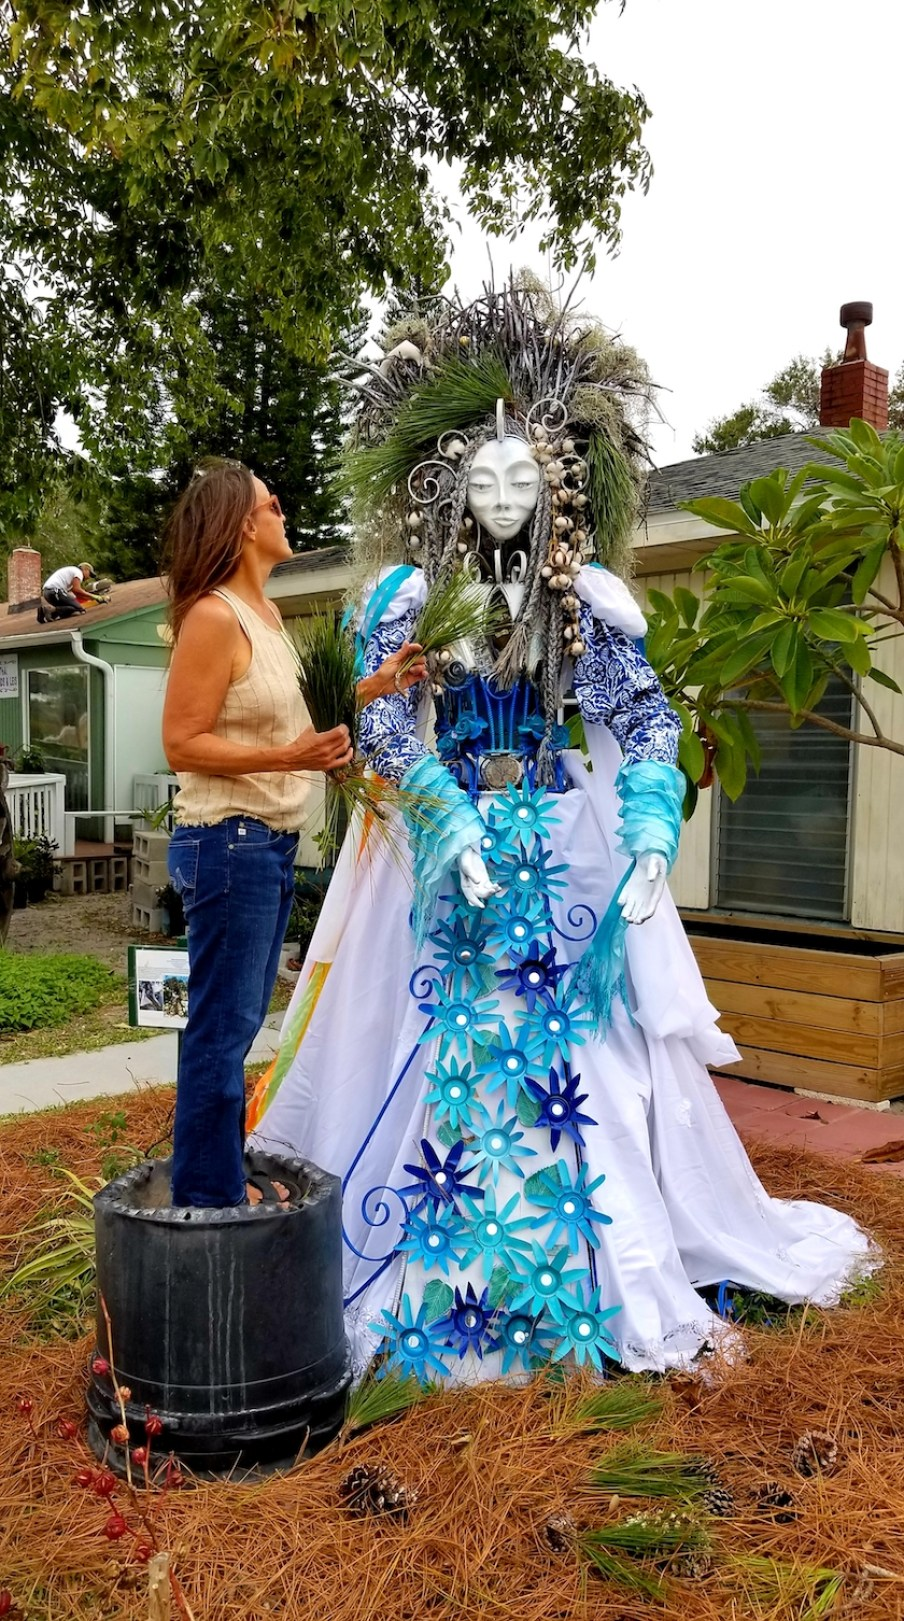 A woman decorating a tall human statue with holiday decor.